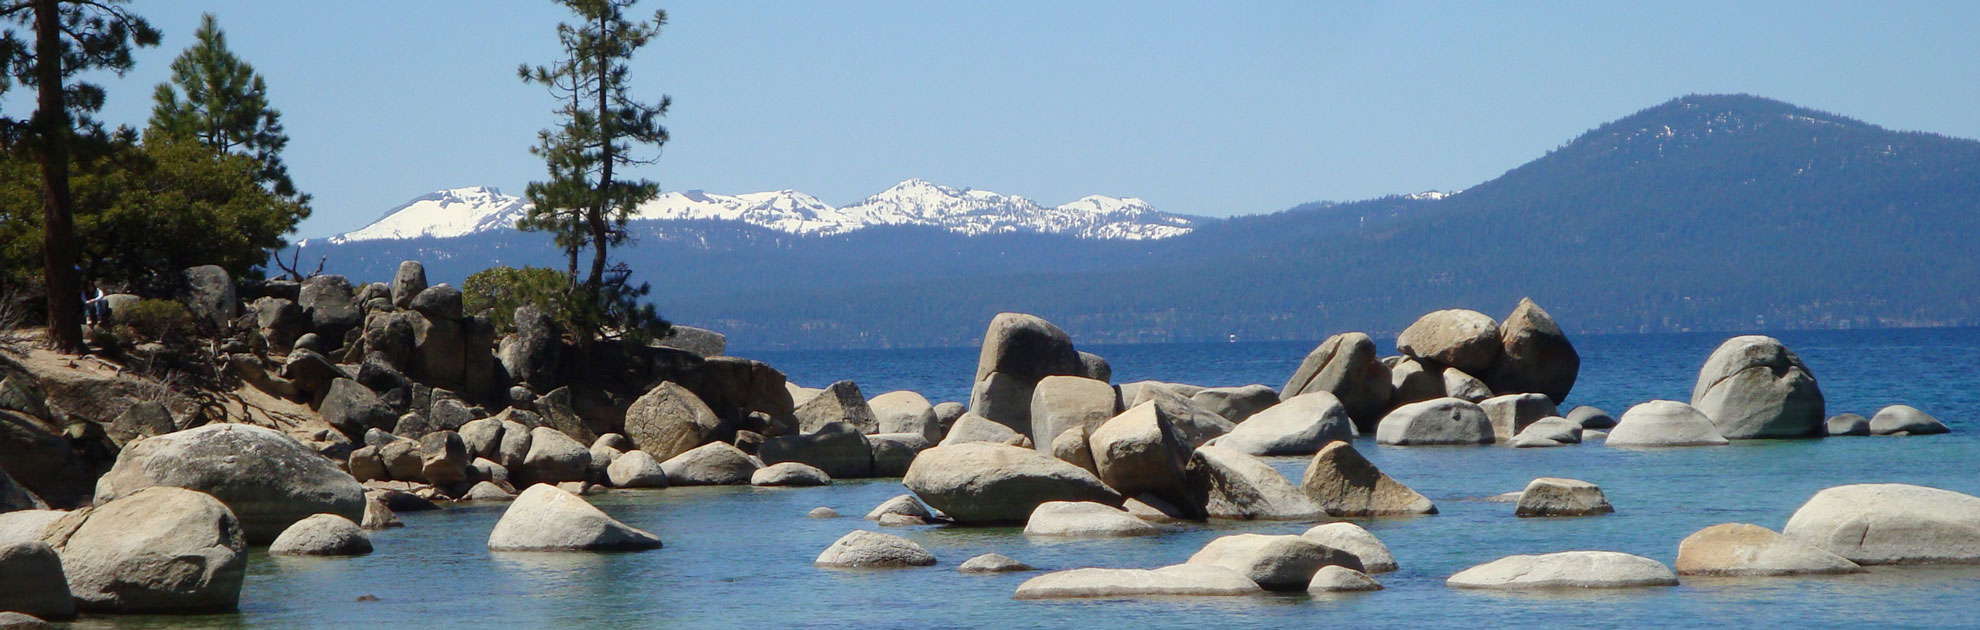 Lake_Tahoe_Incline_Investment_Management